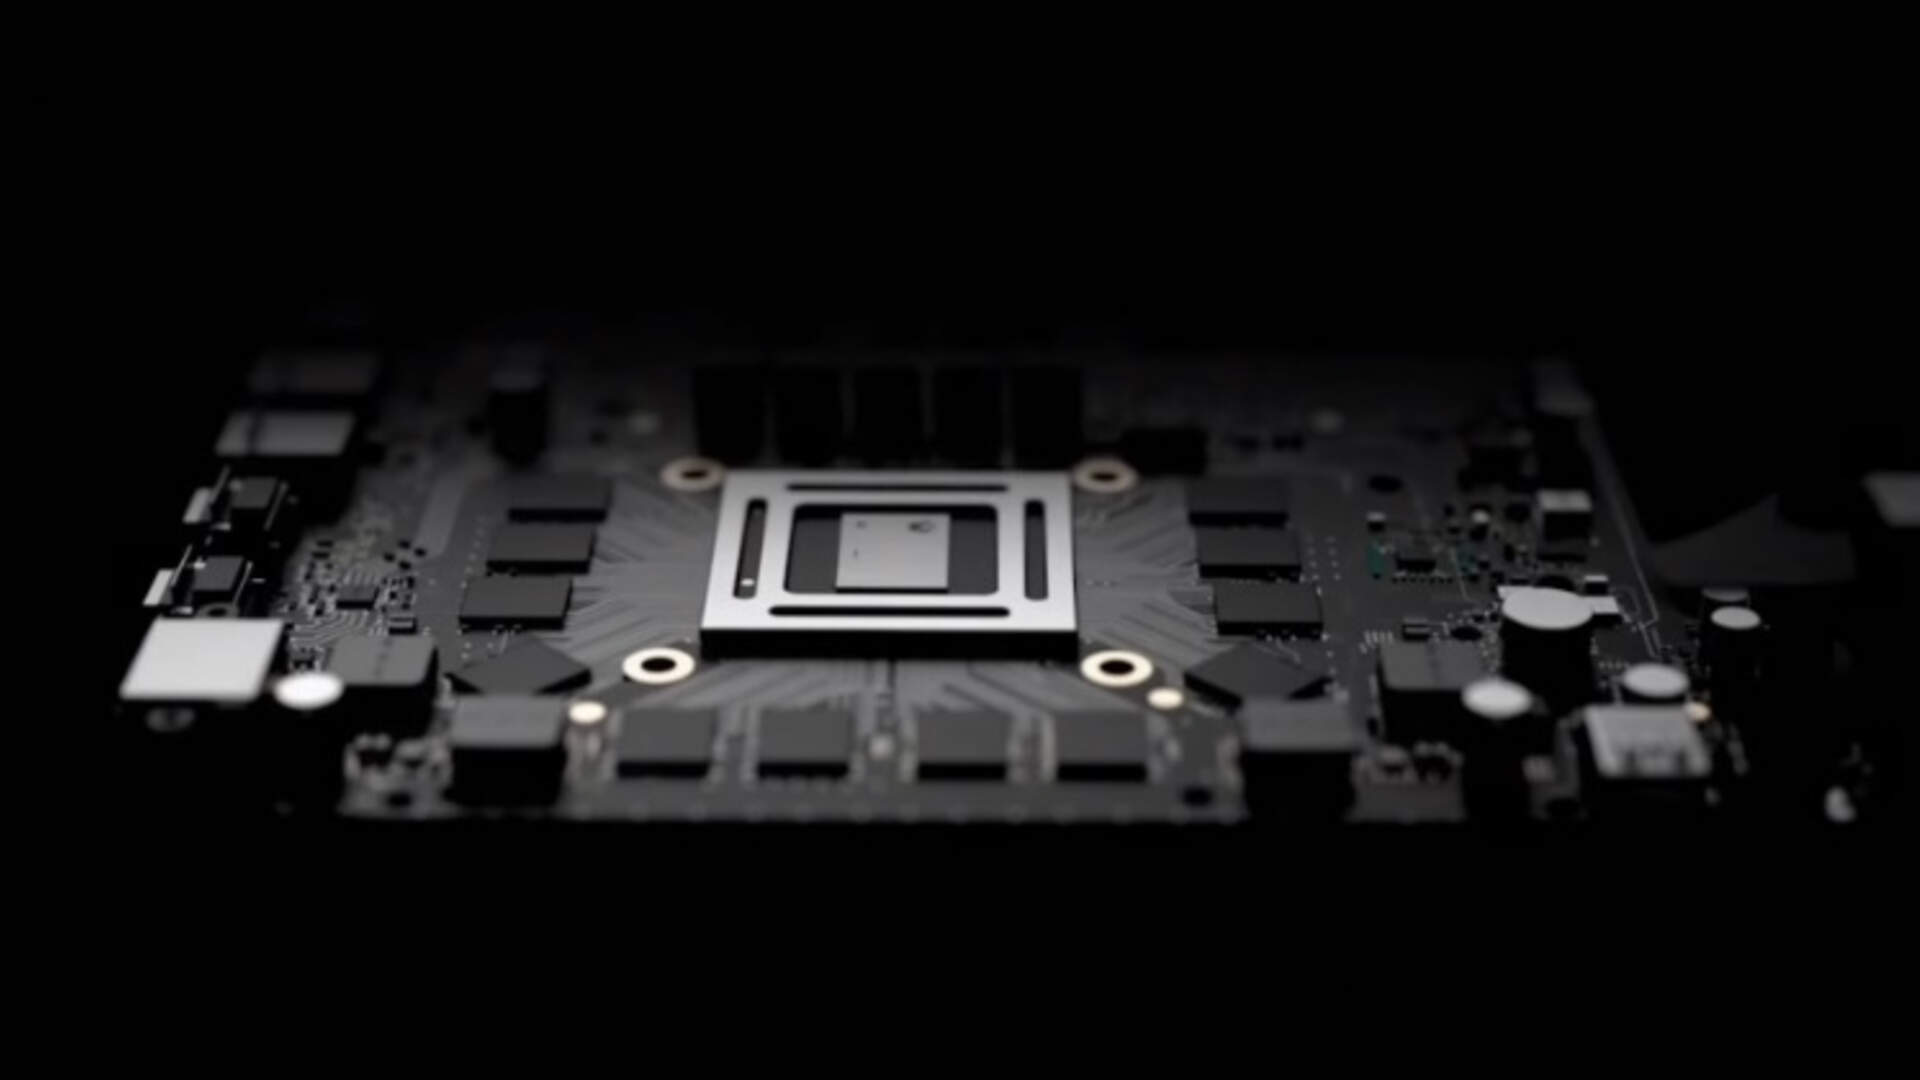 Xbox Project Scorpio Specs Reveal a Beast of a Console